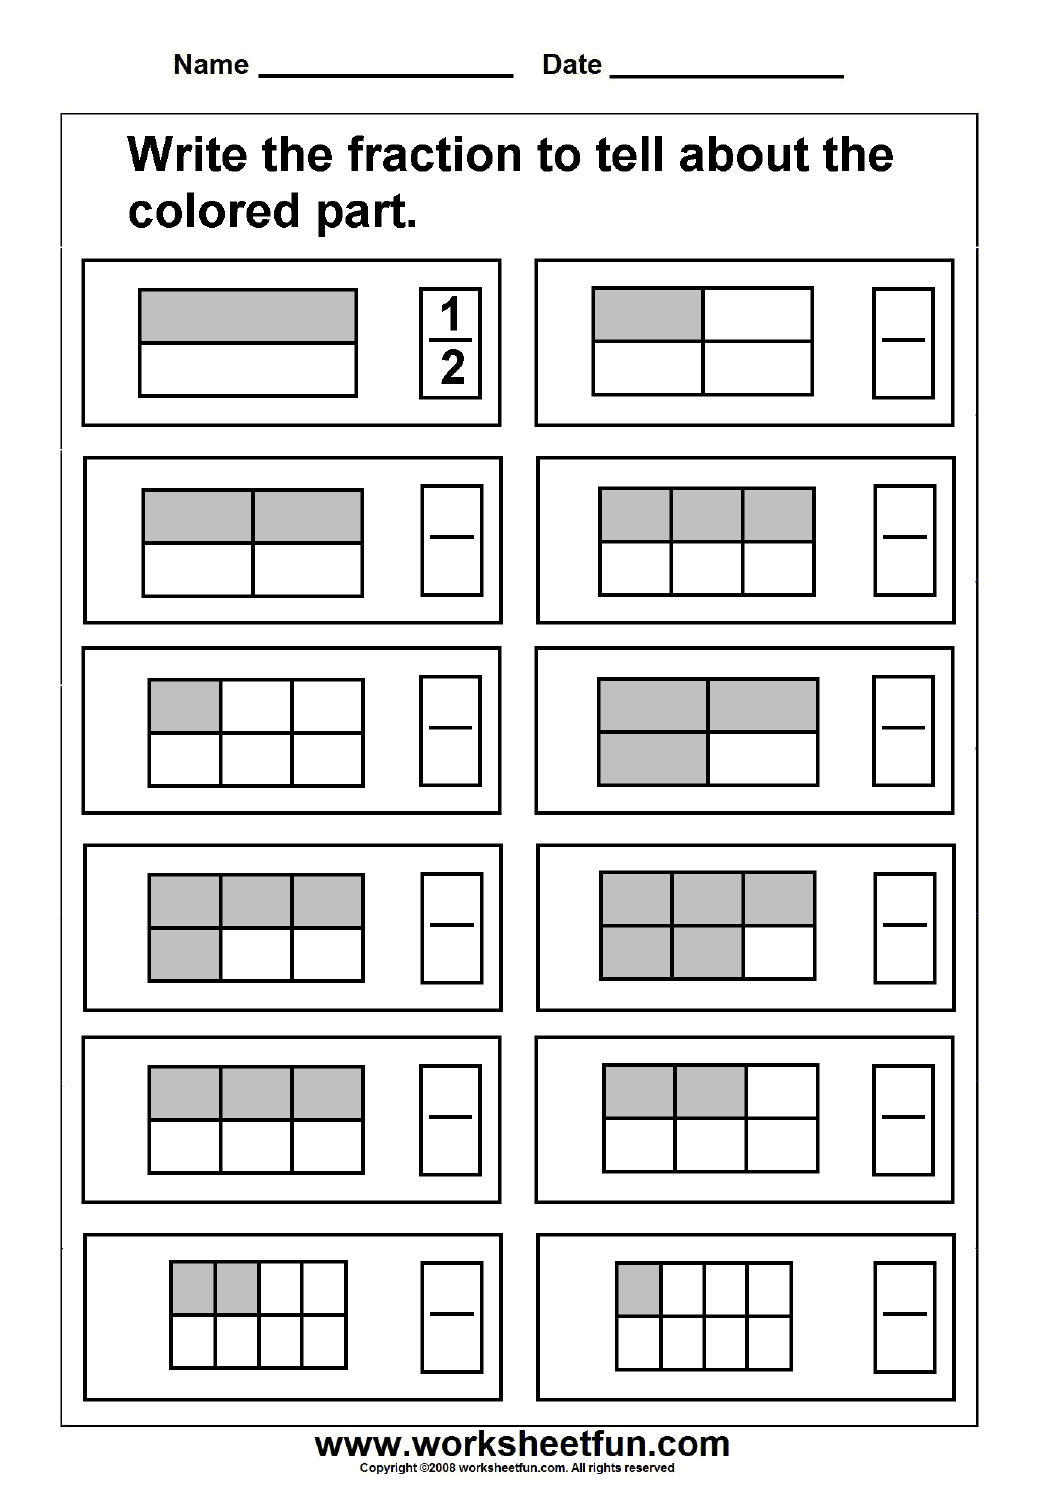 Fraction Model FREE Printable Worksheets Worksheetfun – Fractions of Shapes Worksheets